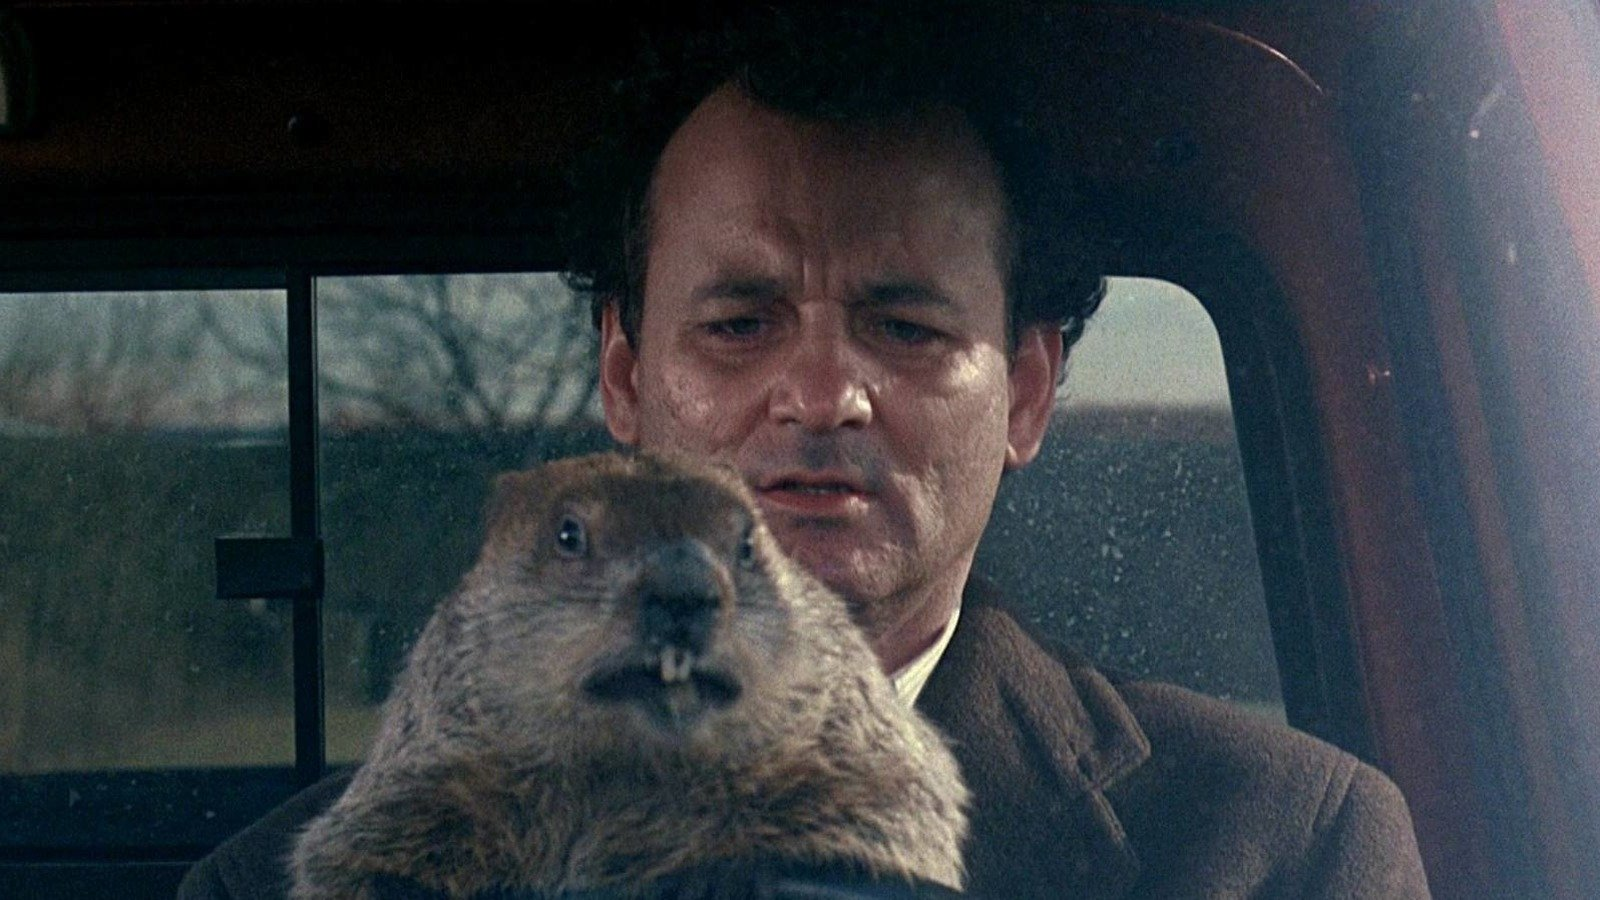 The Real Reason Bill Murray Hated Groundhog Day